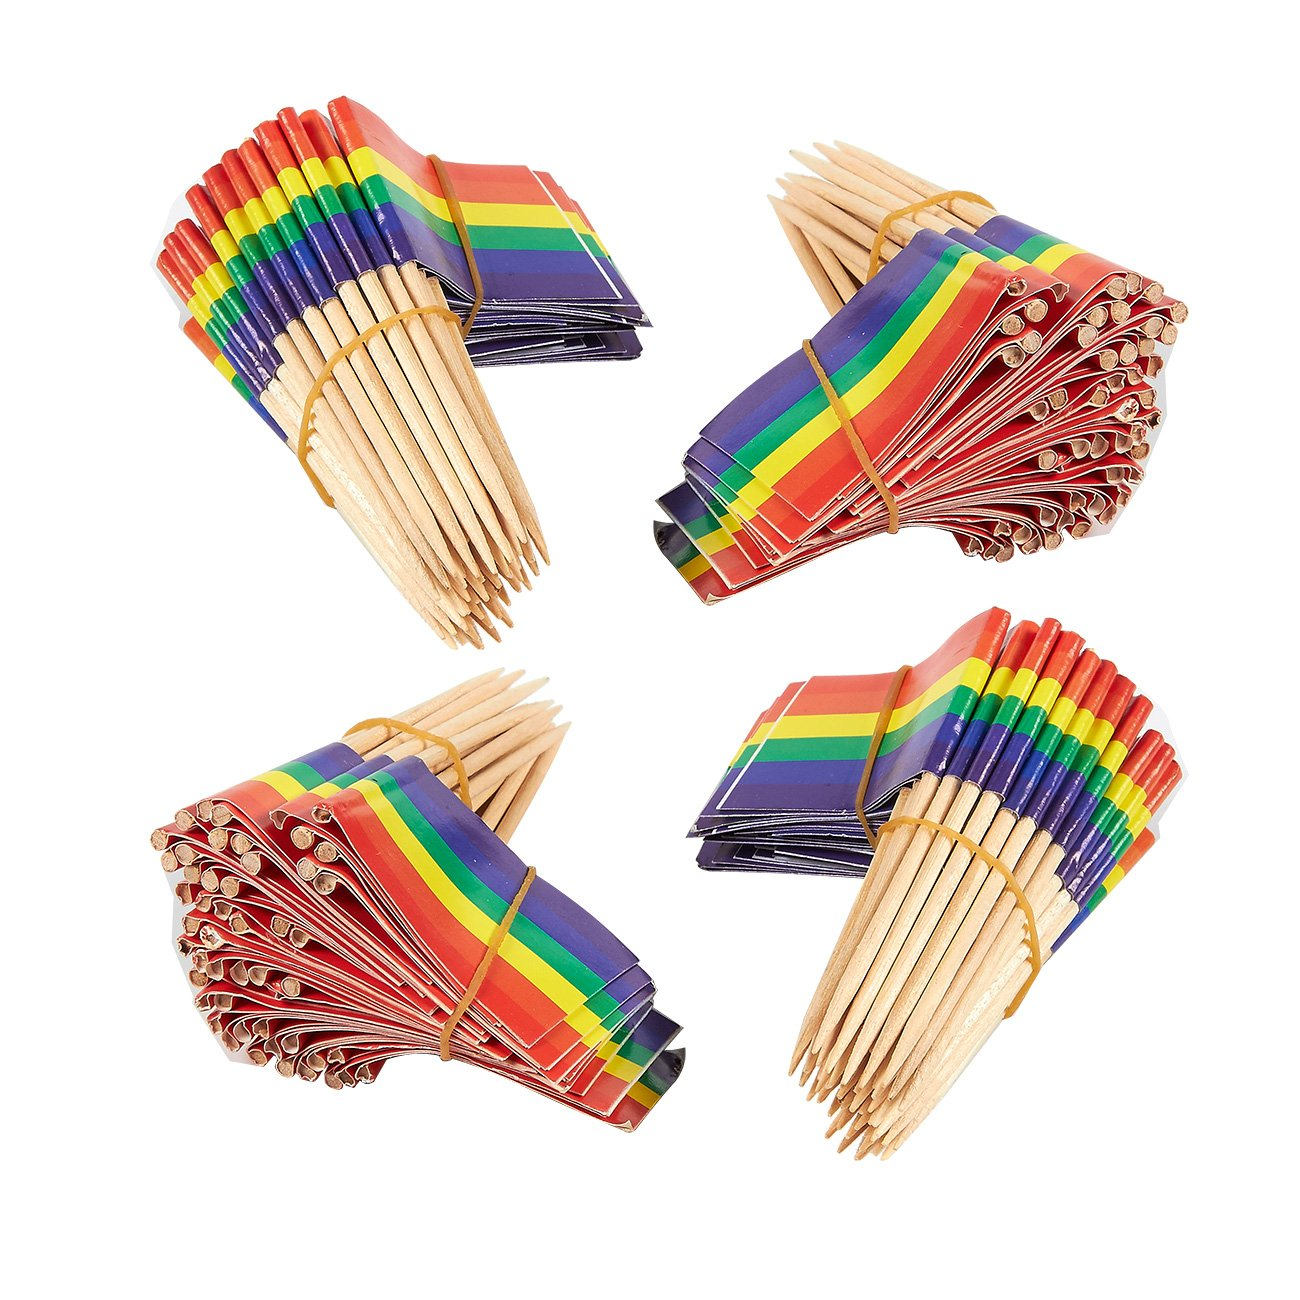 8254026d597 Get Quotations · 200 Count Rainbow Flag Picks - Party Cocktail Toothpicks  for Food